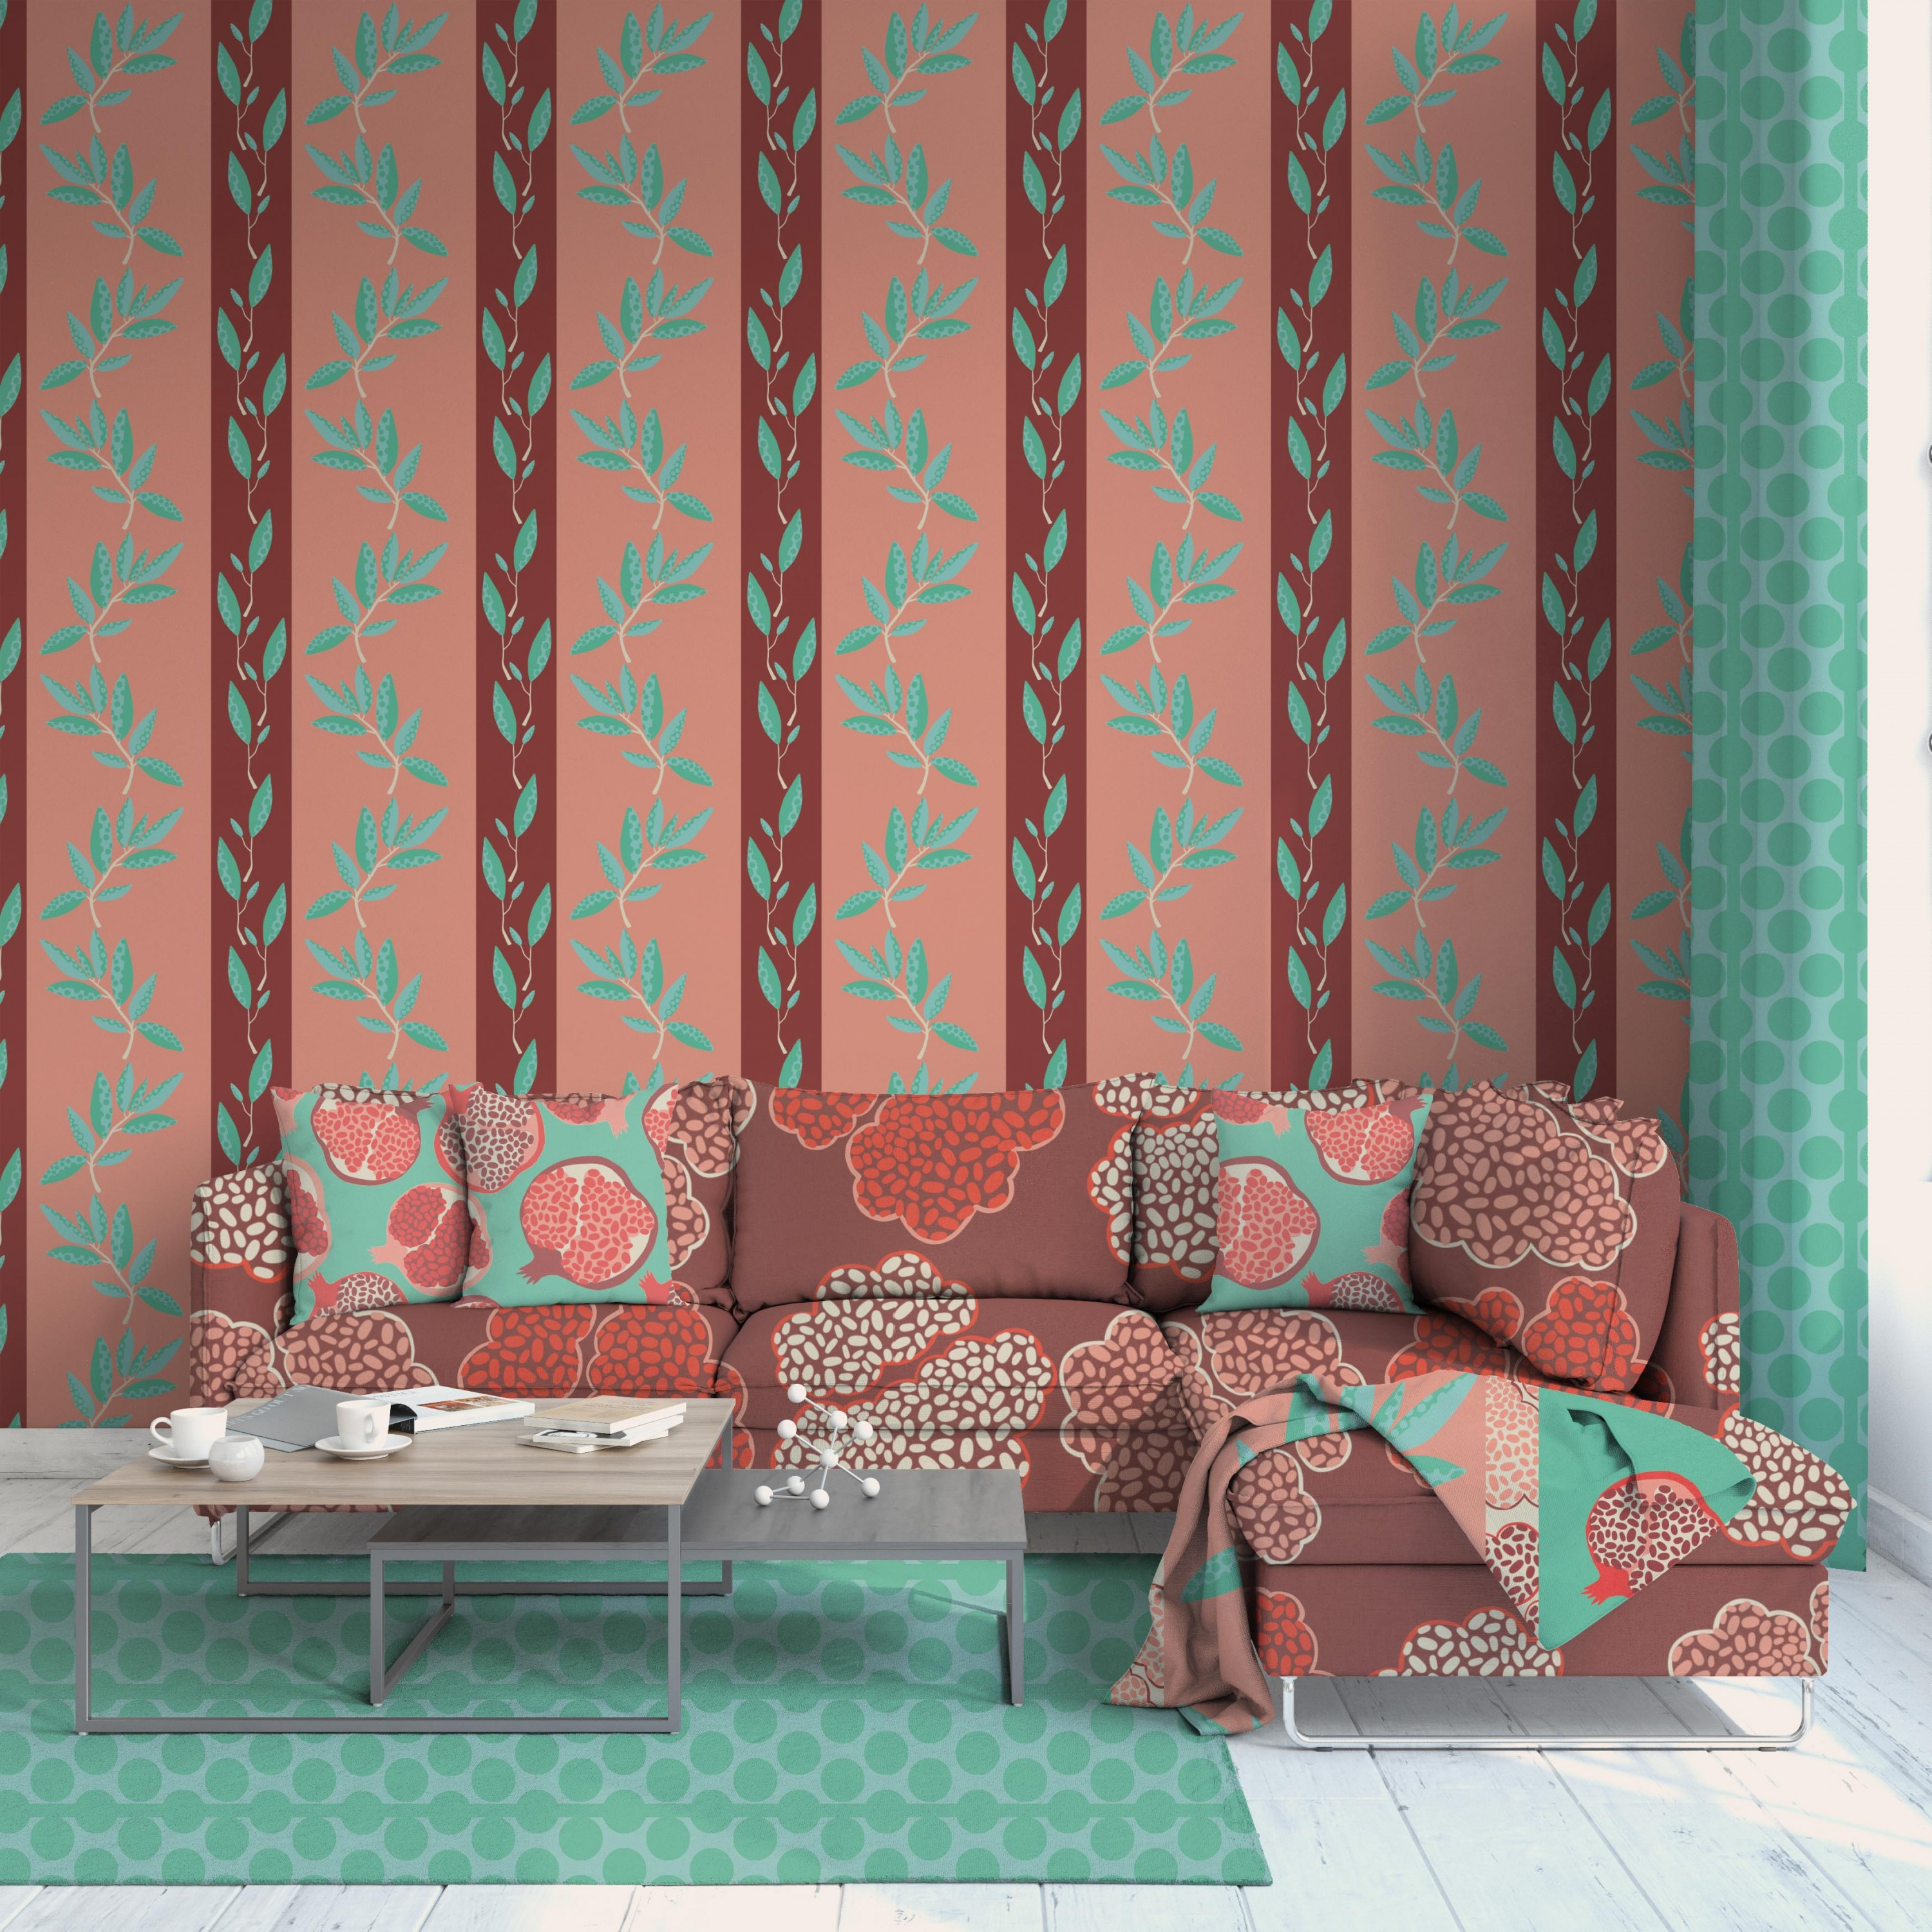 The image is of a living room with a sofa, couch pillows, a throw blanket, rectangular coffee table, rug, and curtain. The first image has a dark red couch with pink and red seeds of a pomegranate. The pillows have red and pink pomegranates with a green b